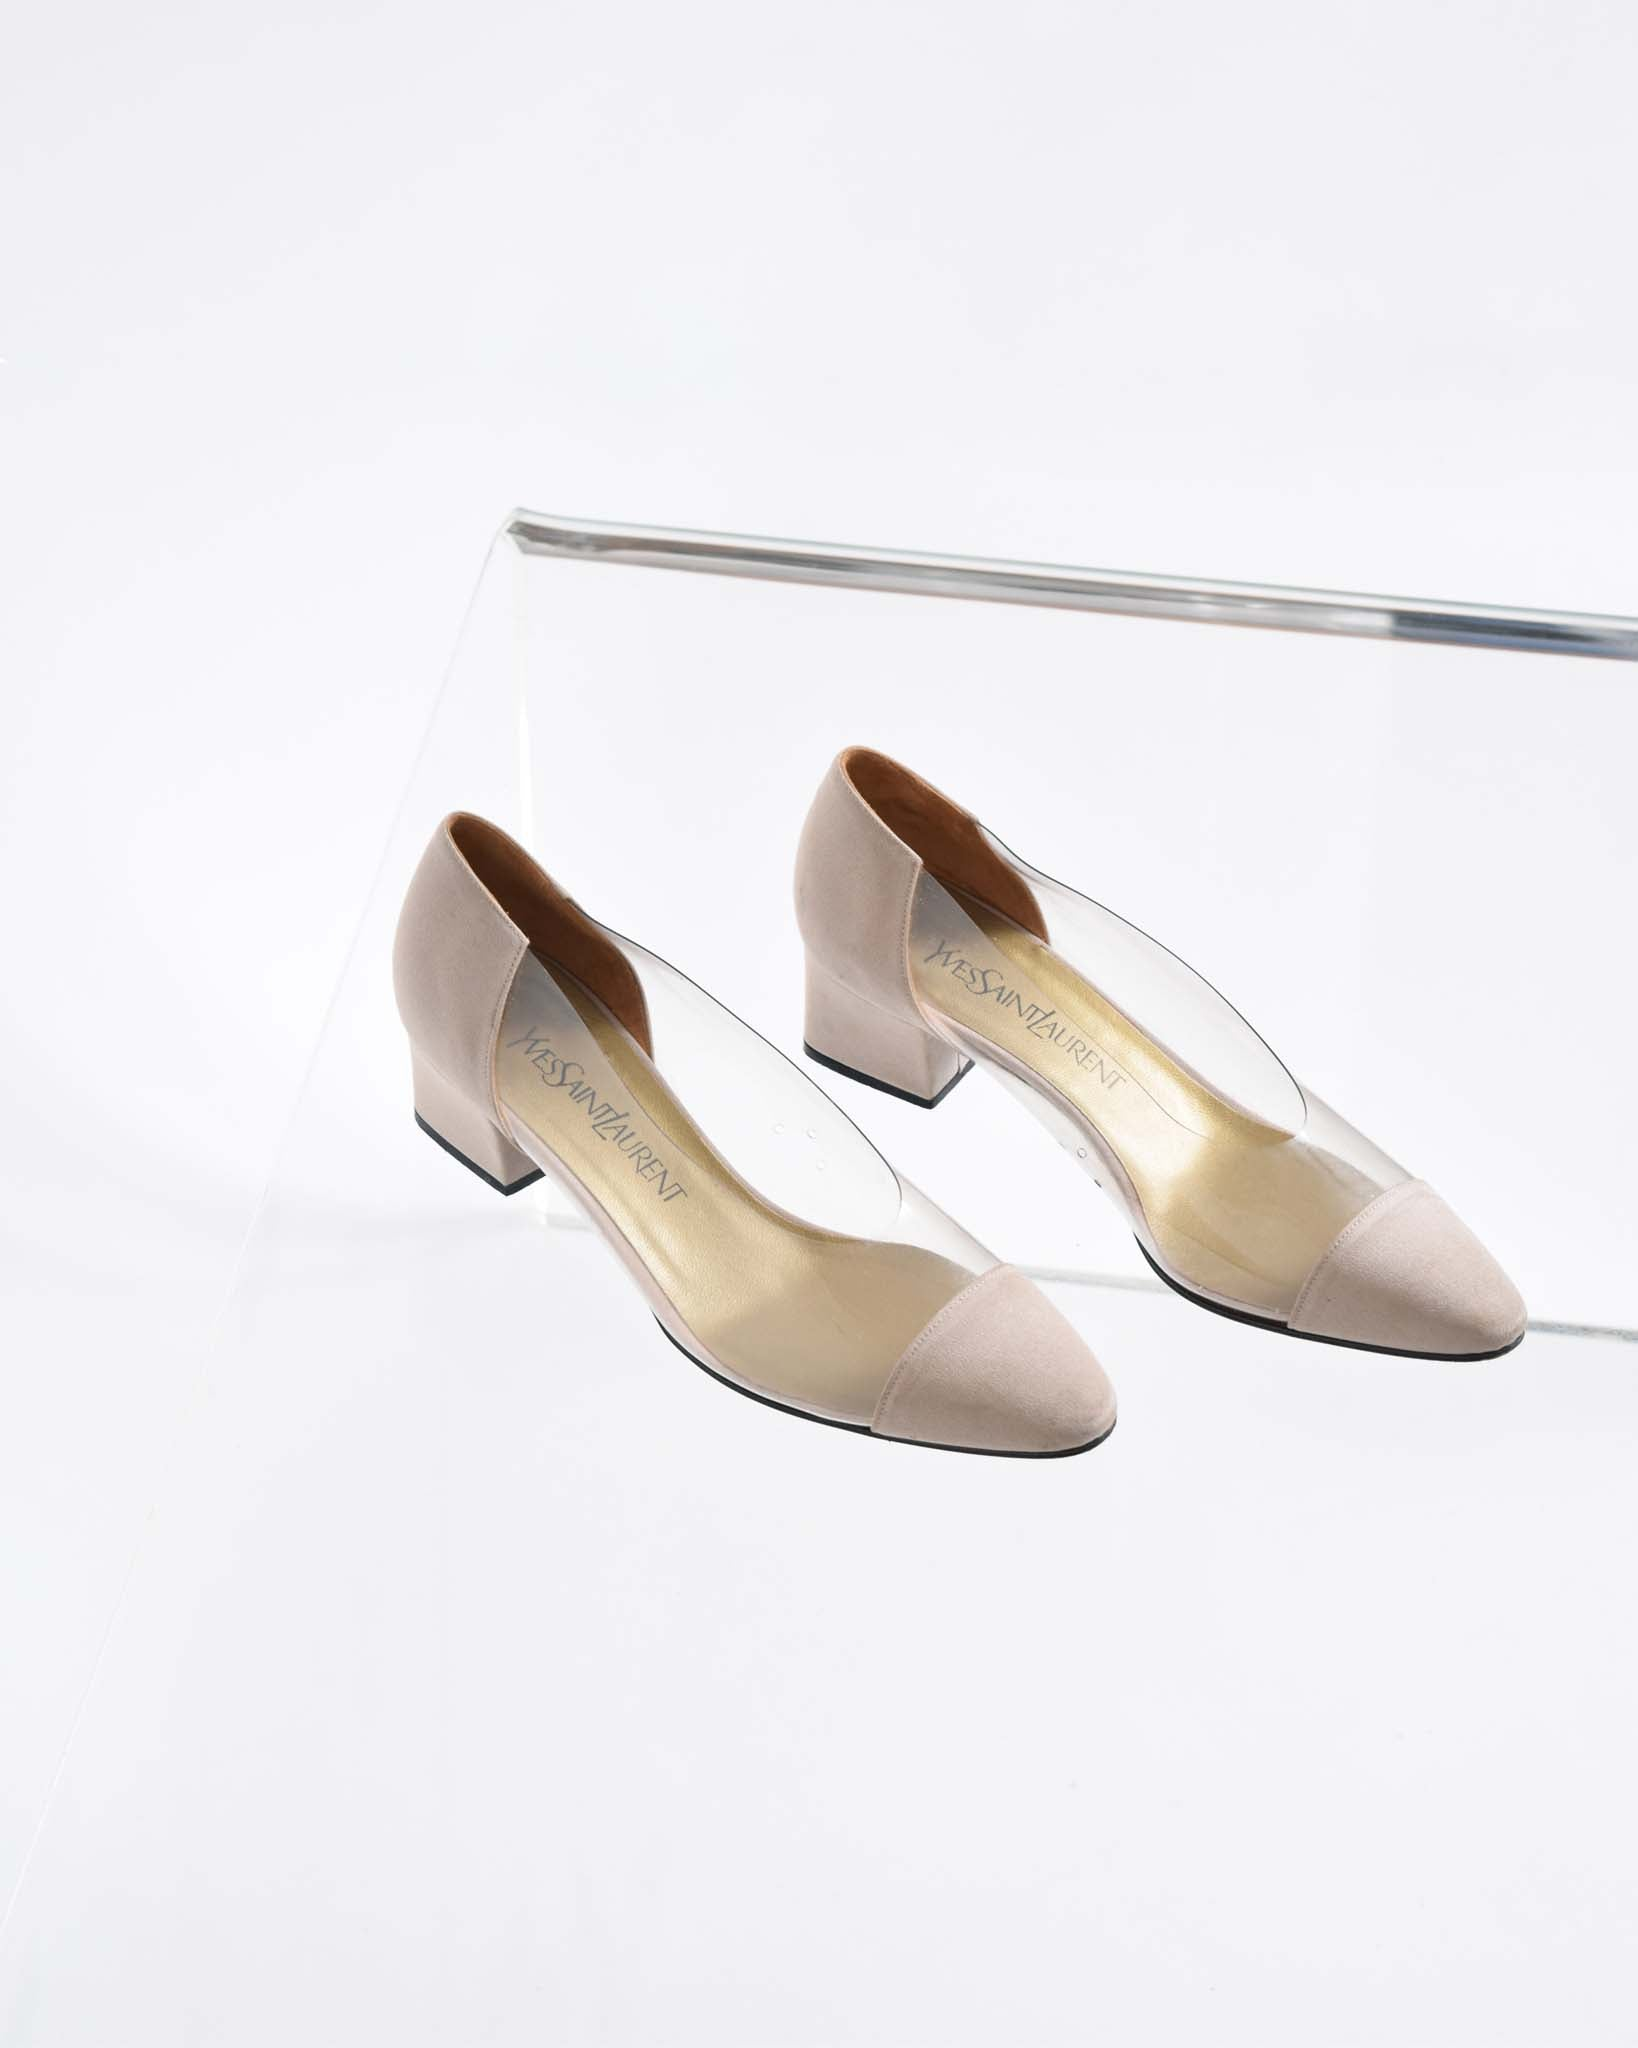 Vintage YSL Clear Pumps, Size 8